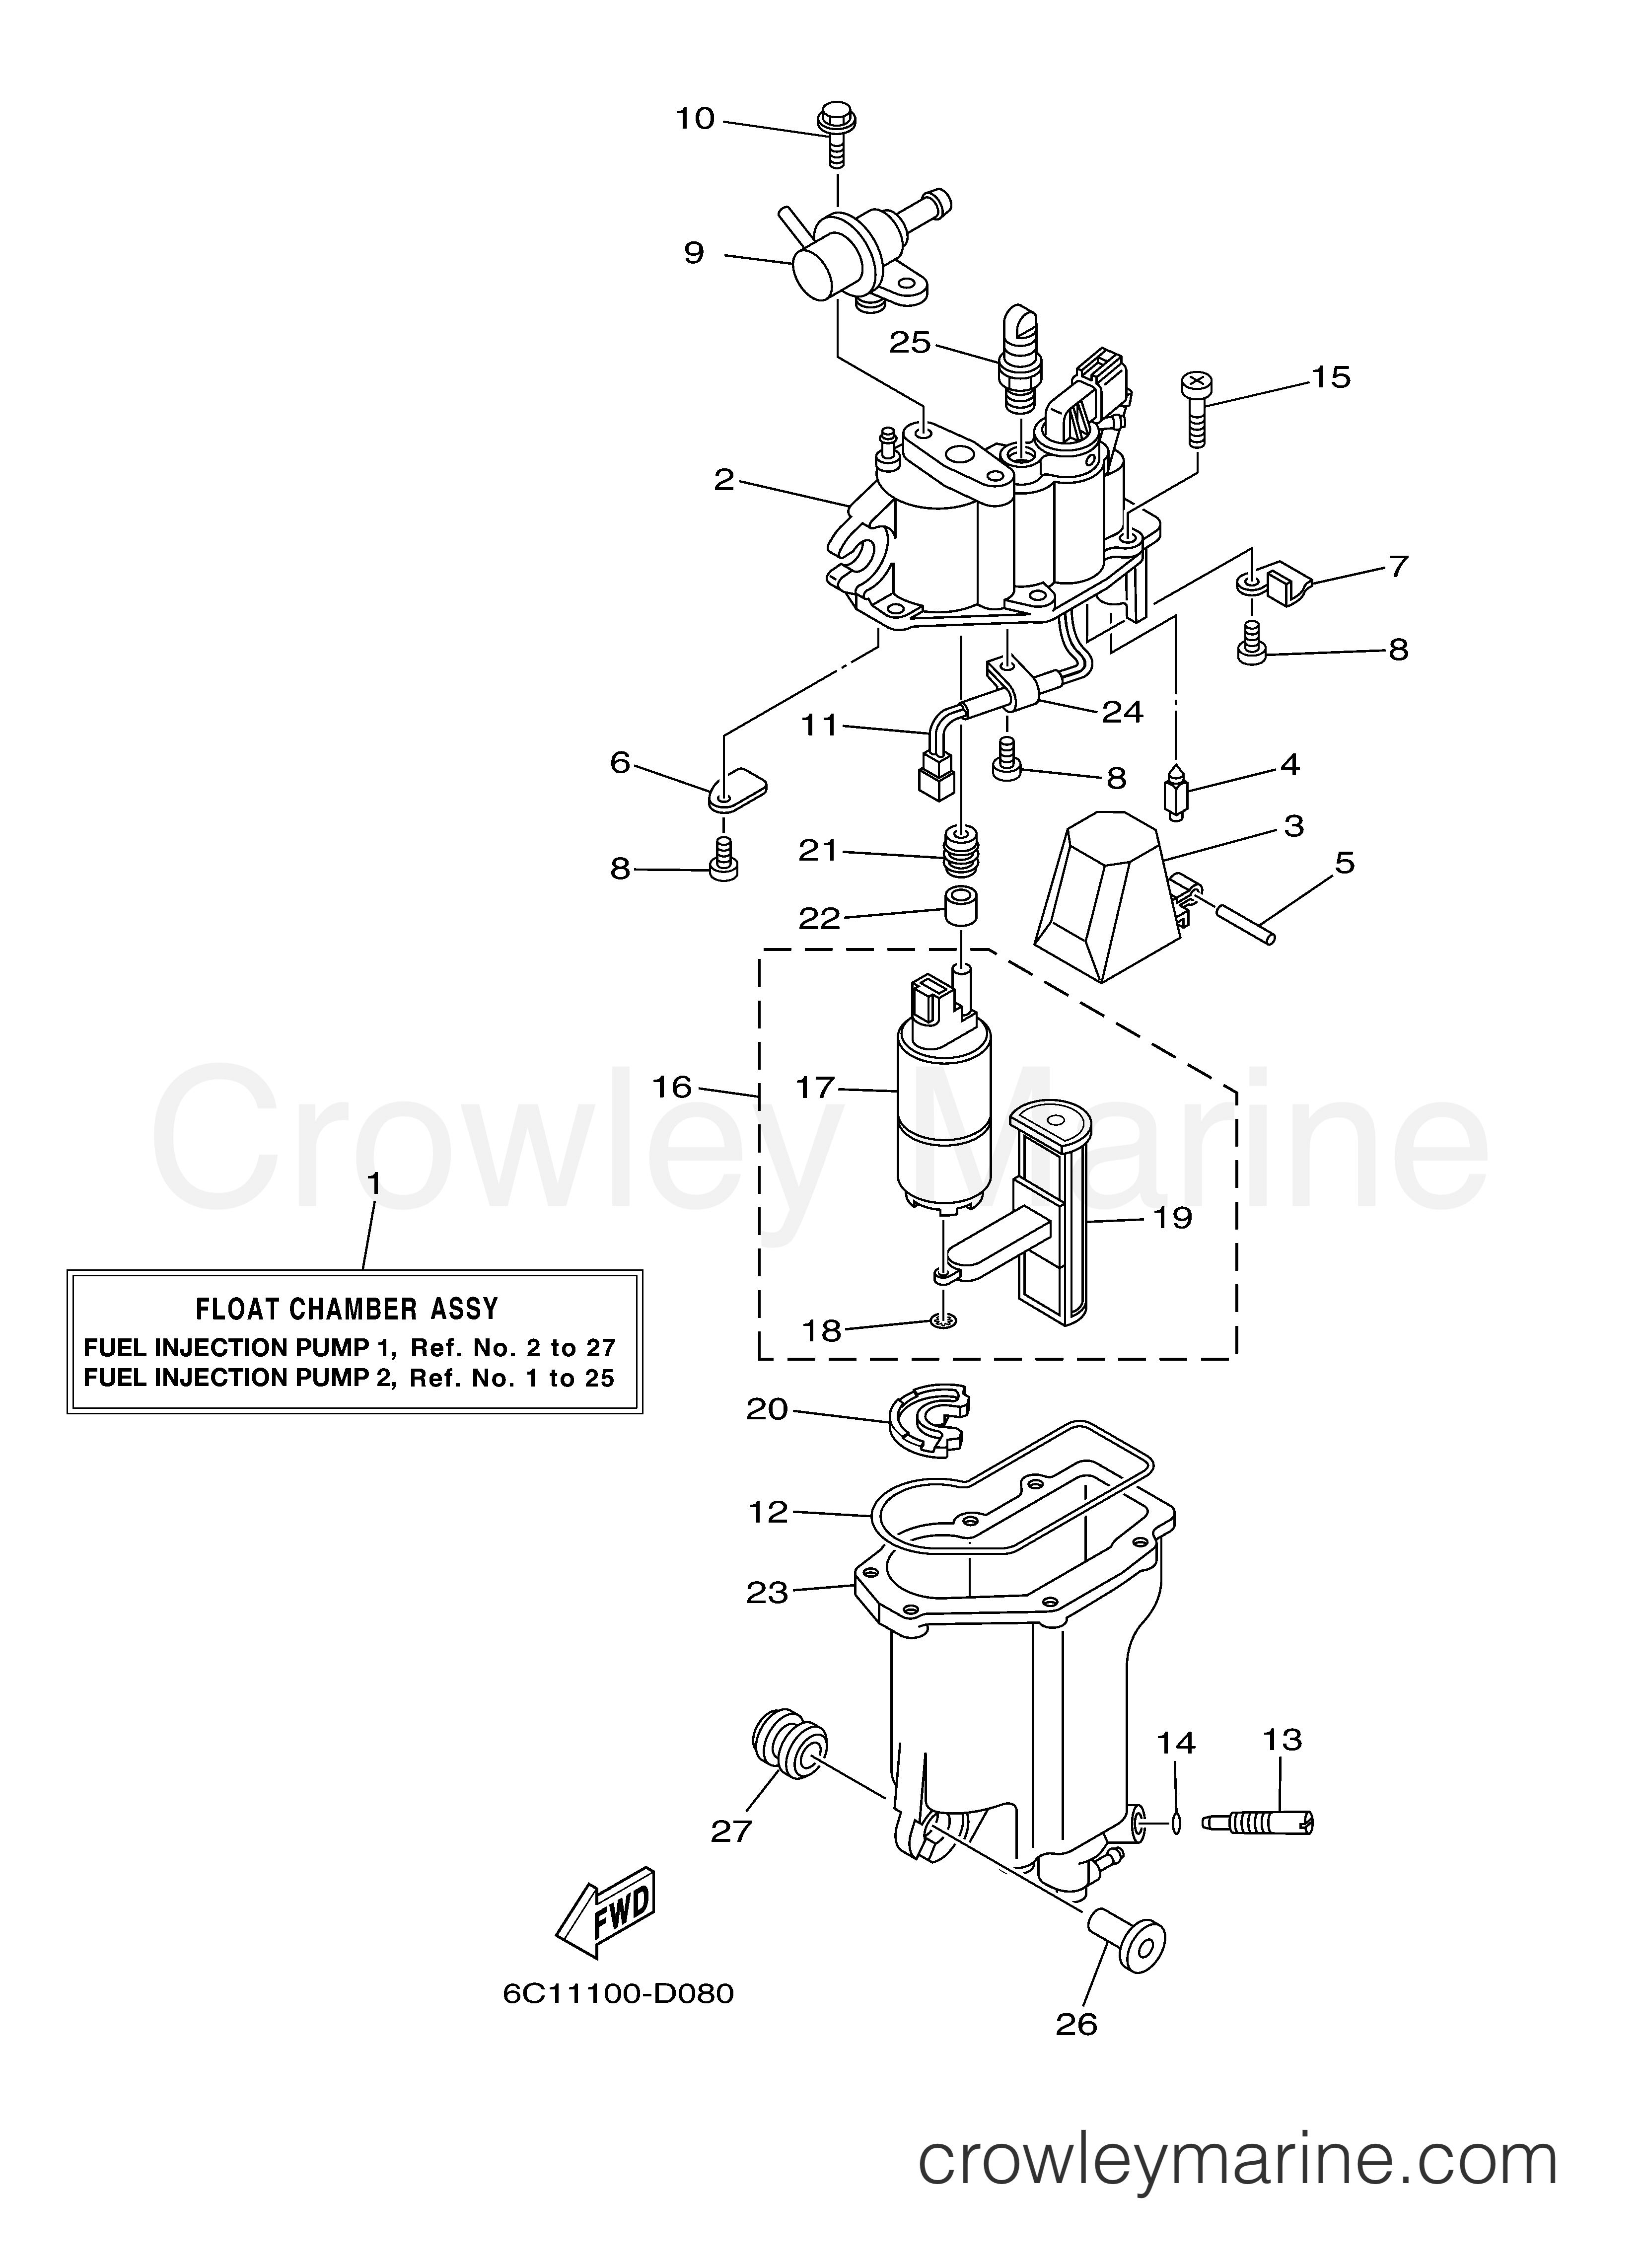 fuel injection pump 1 2005 yamaha outboard 60hp f60tlr With diagram of 2005 f225txrd yamaha outboard fuel injection pump 1 diagram